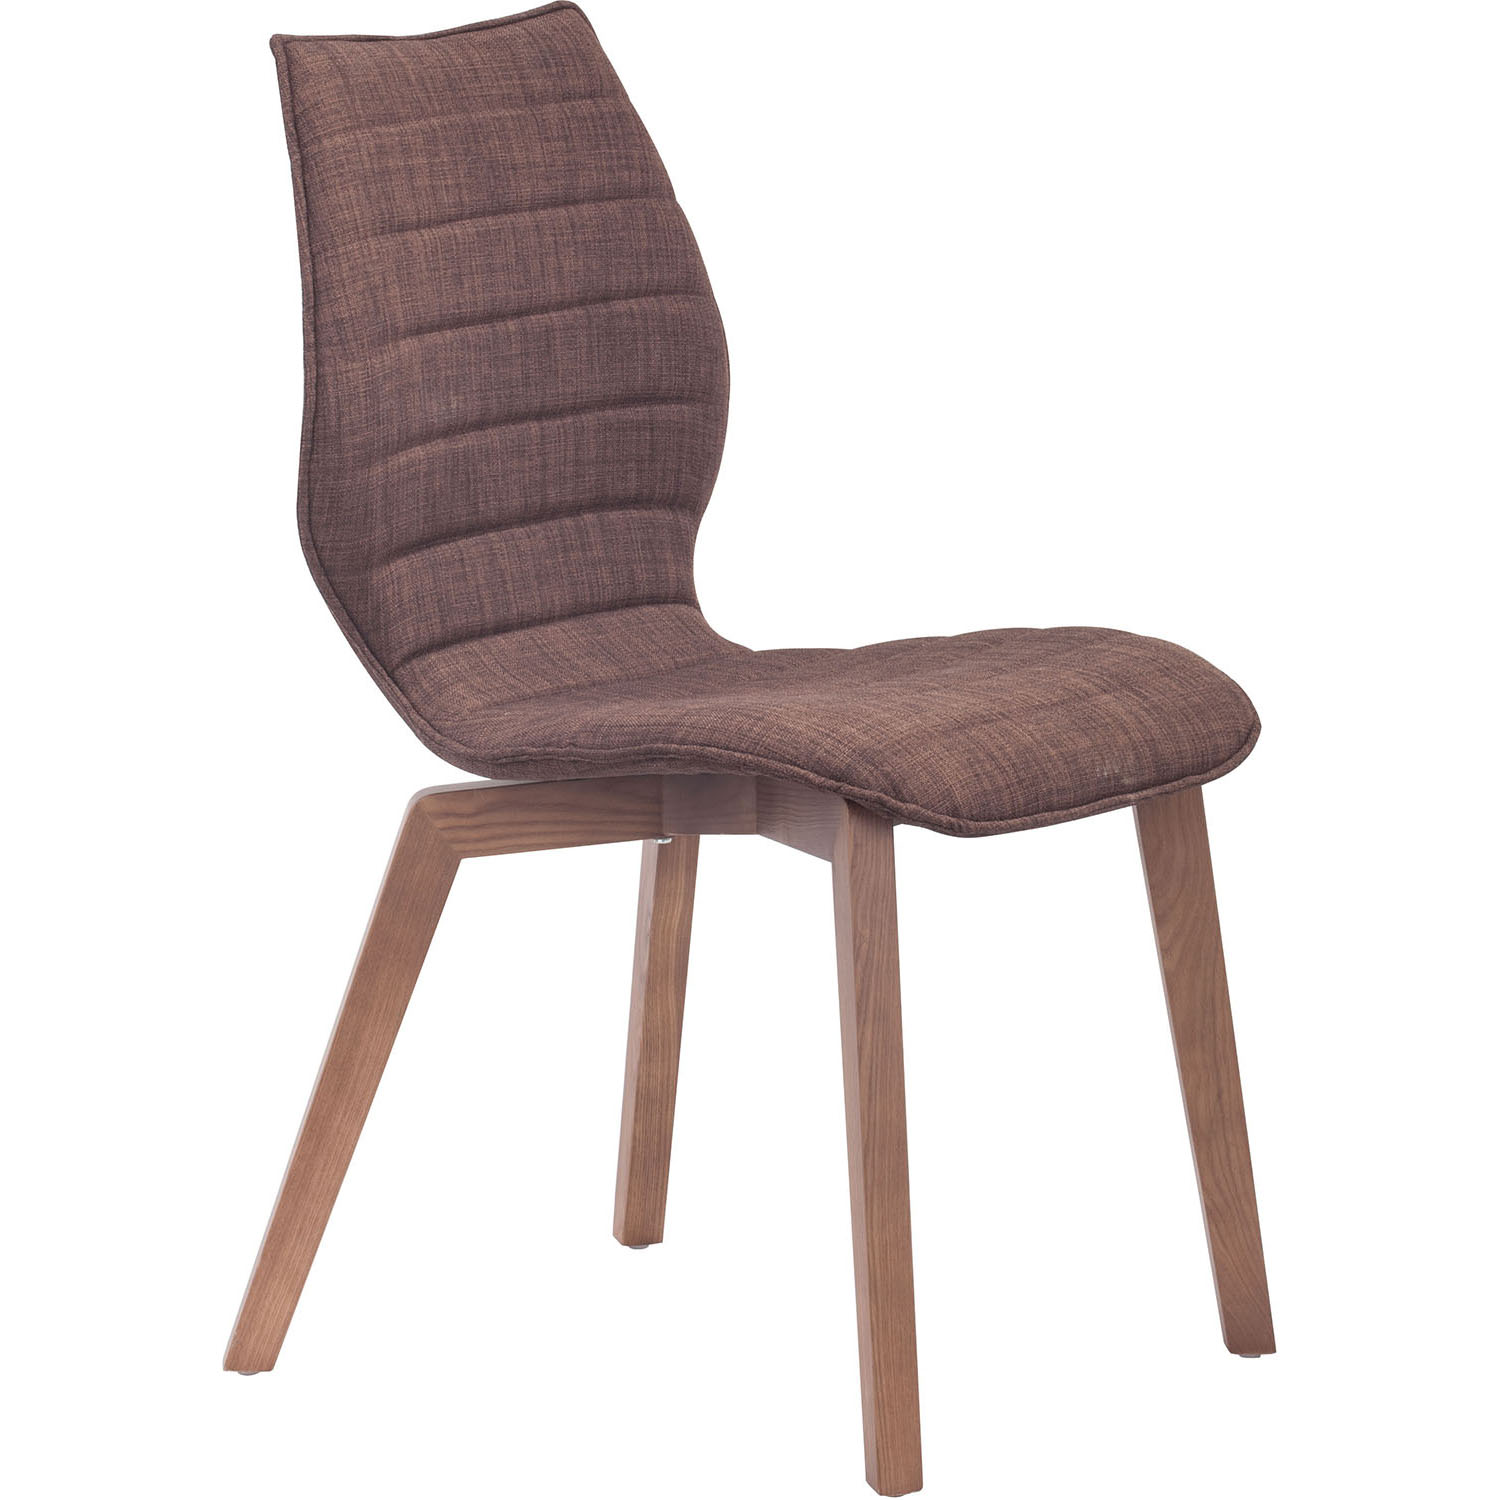 Superb-quality Modern Aalborg Dining Chairs  Product Photo